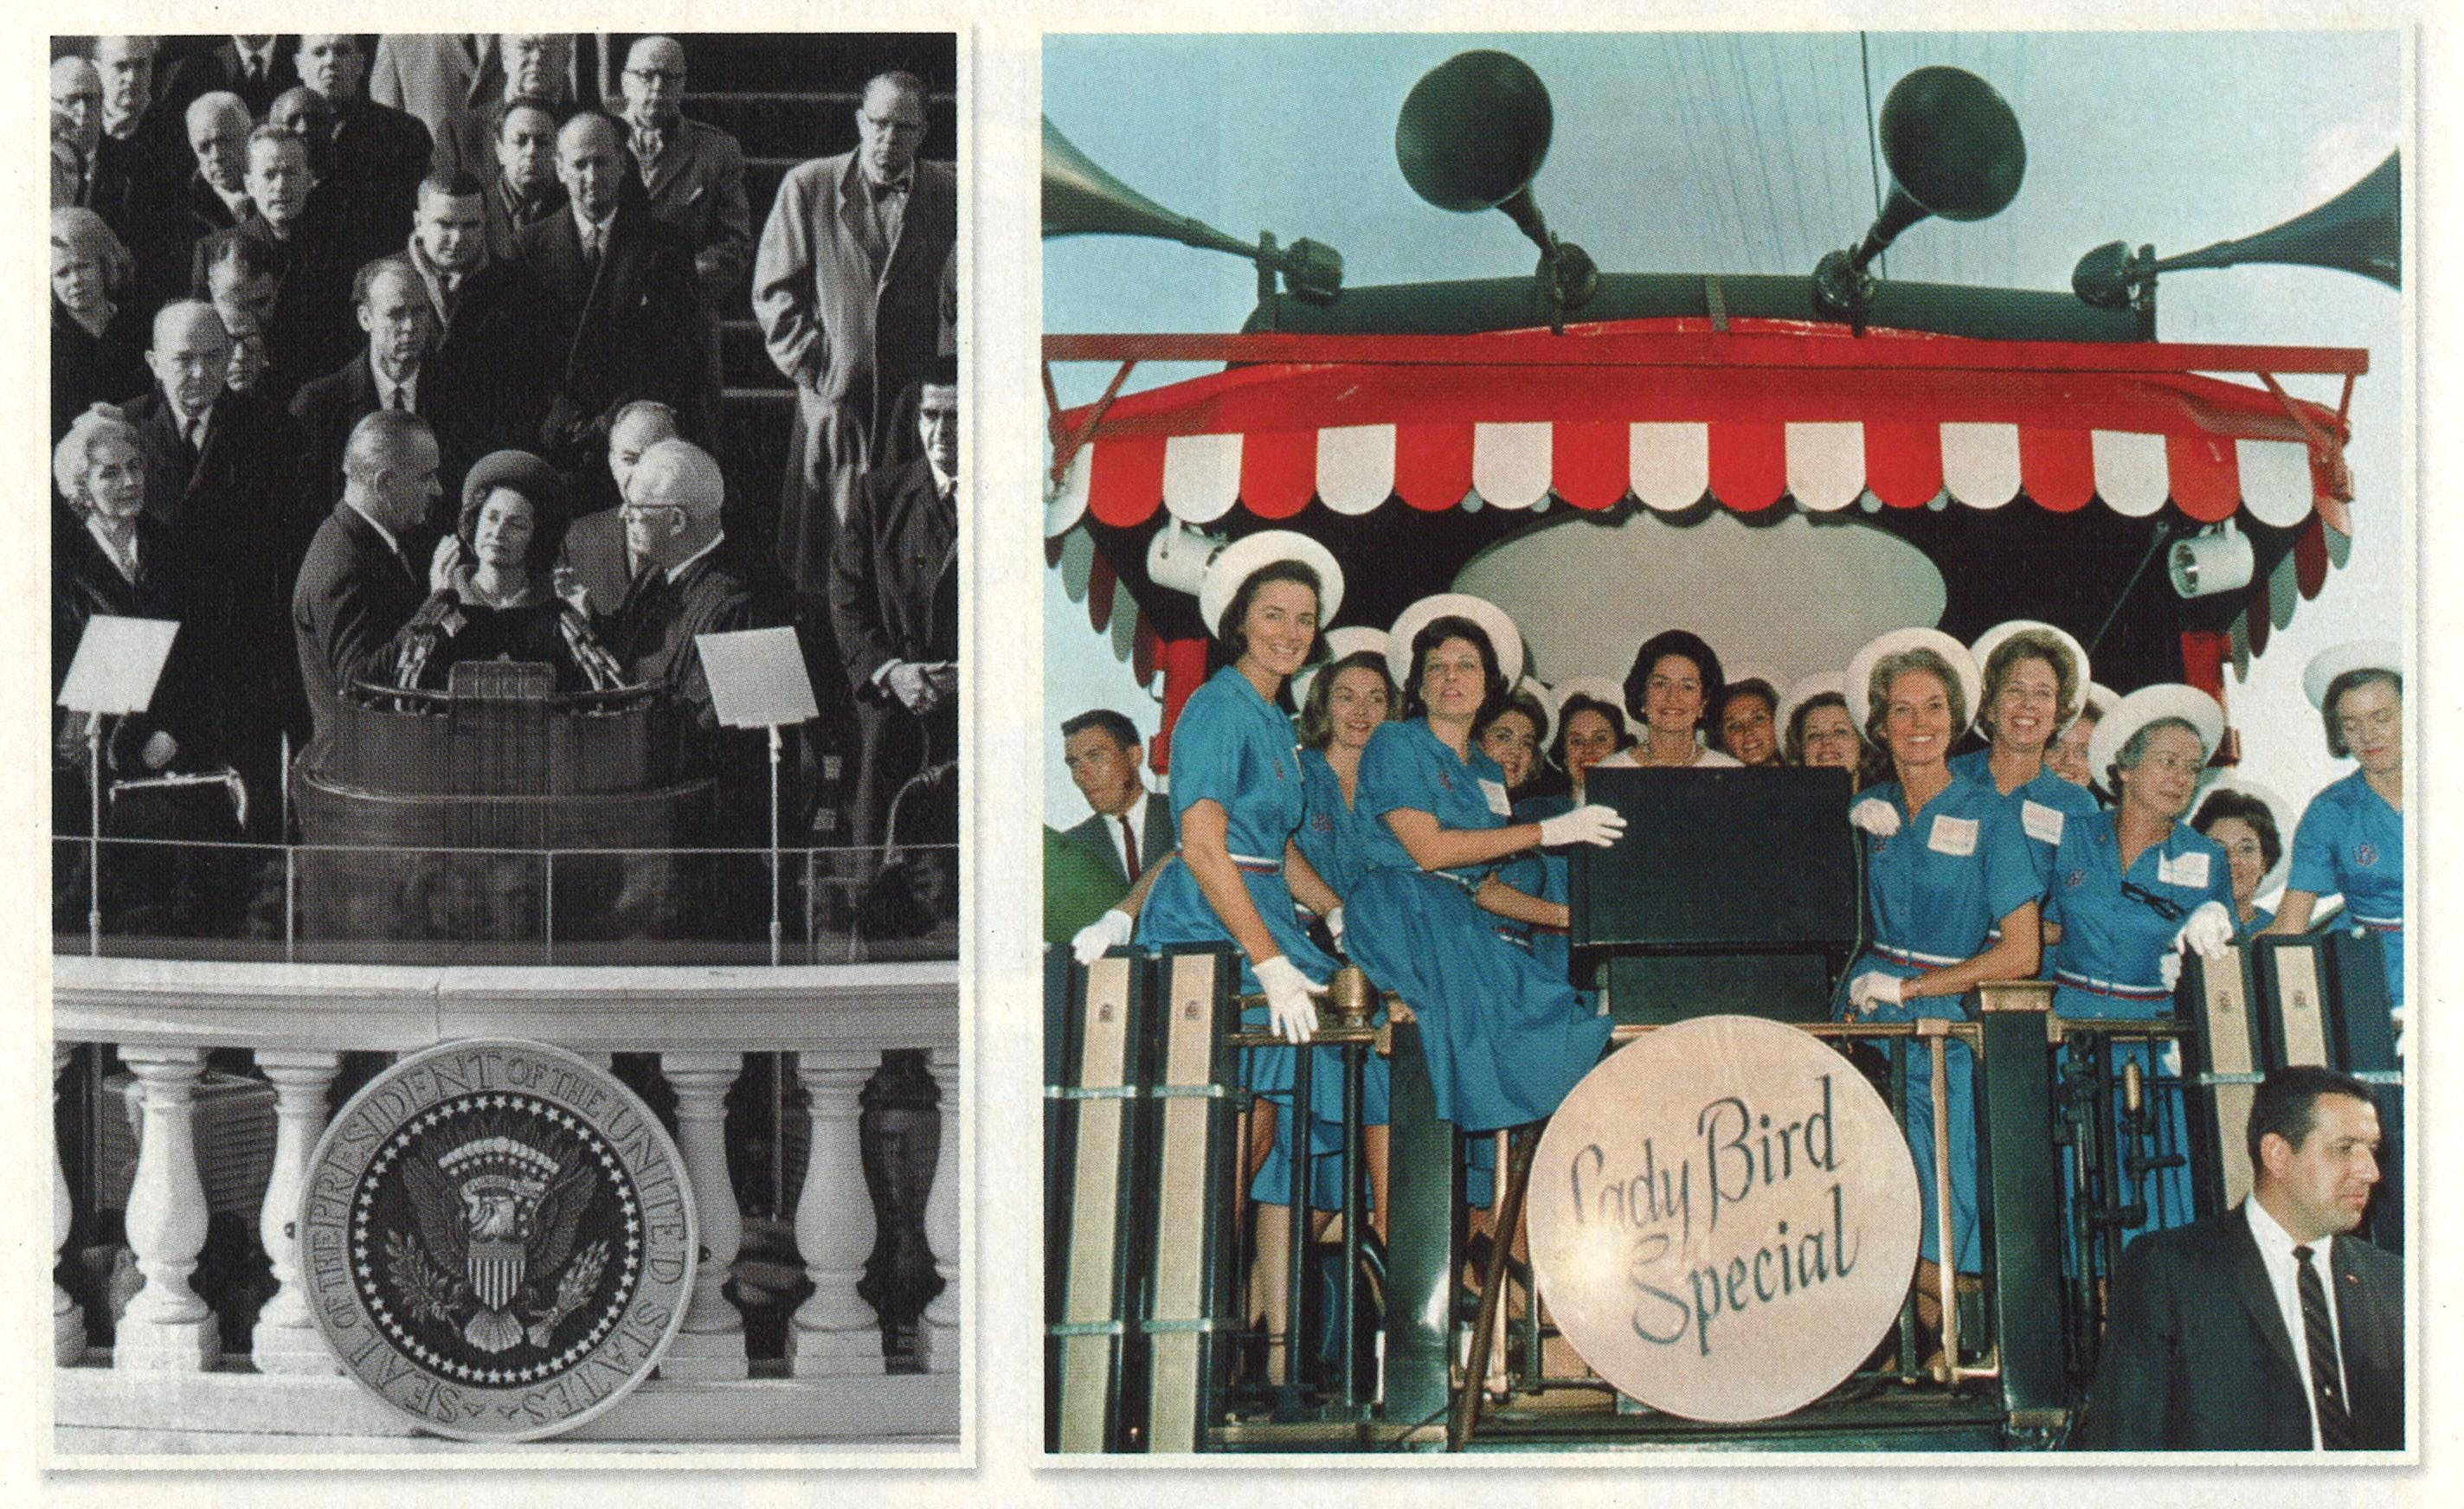 From left: At Lyndon's inauguration in 1965. Riding through the South on the Lady Bird Special during the 1964 campaign.